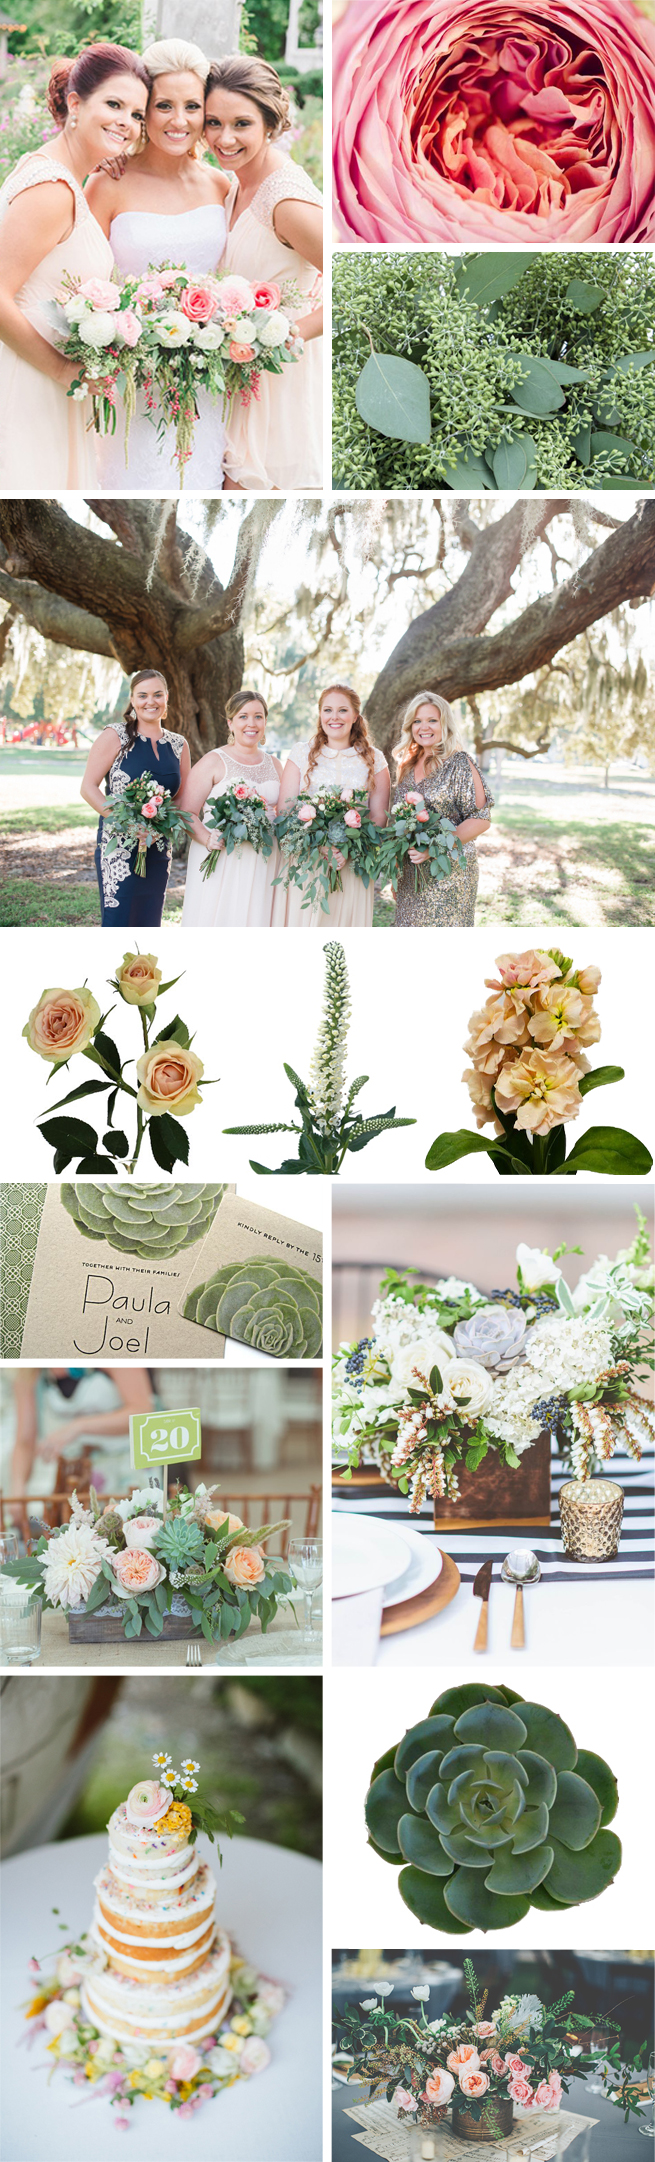 Modern Garden - 2015 Wedding Flower Trend